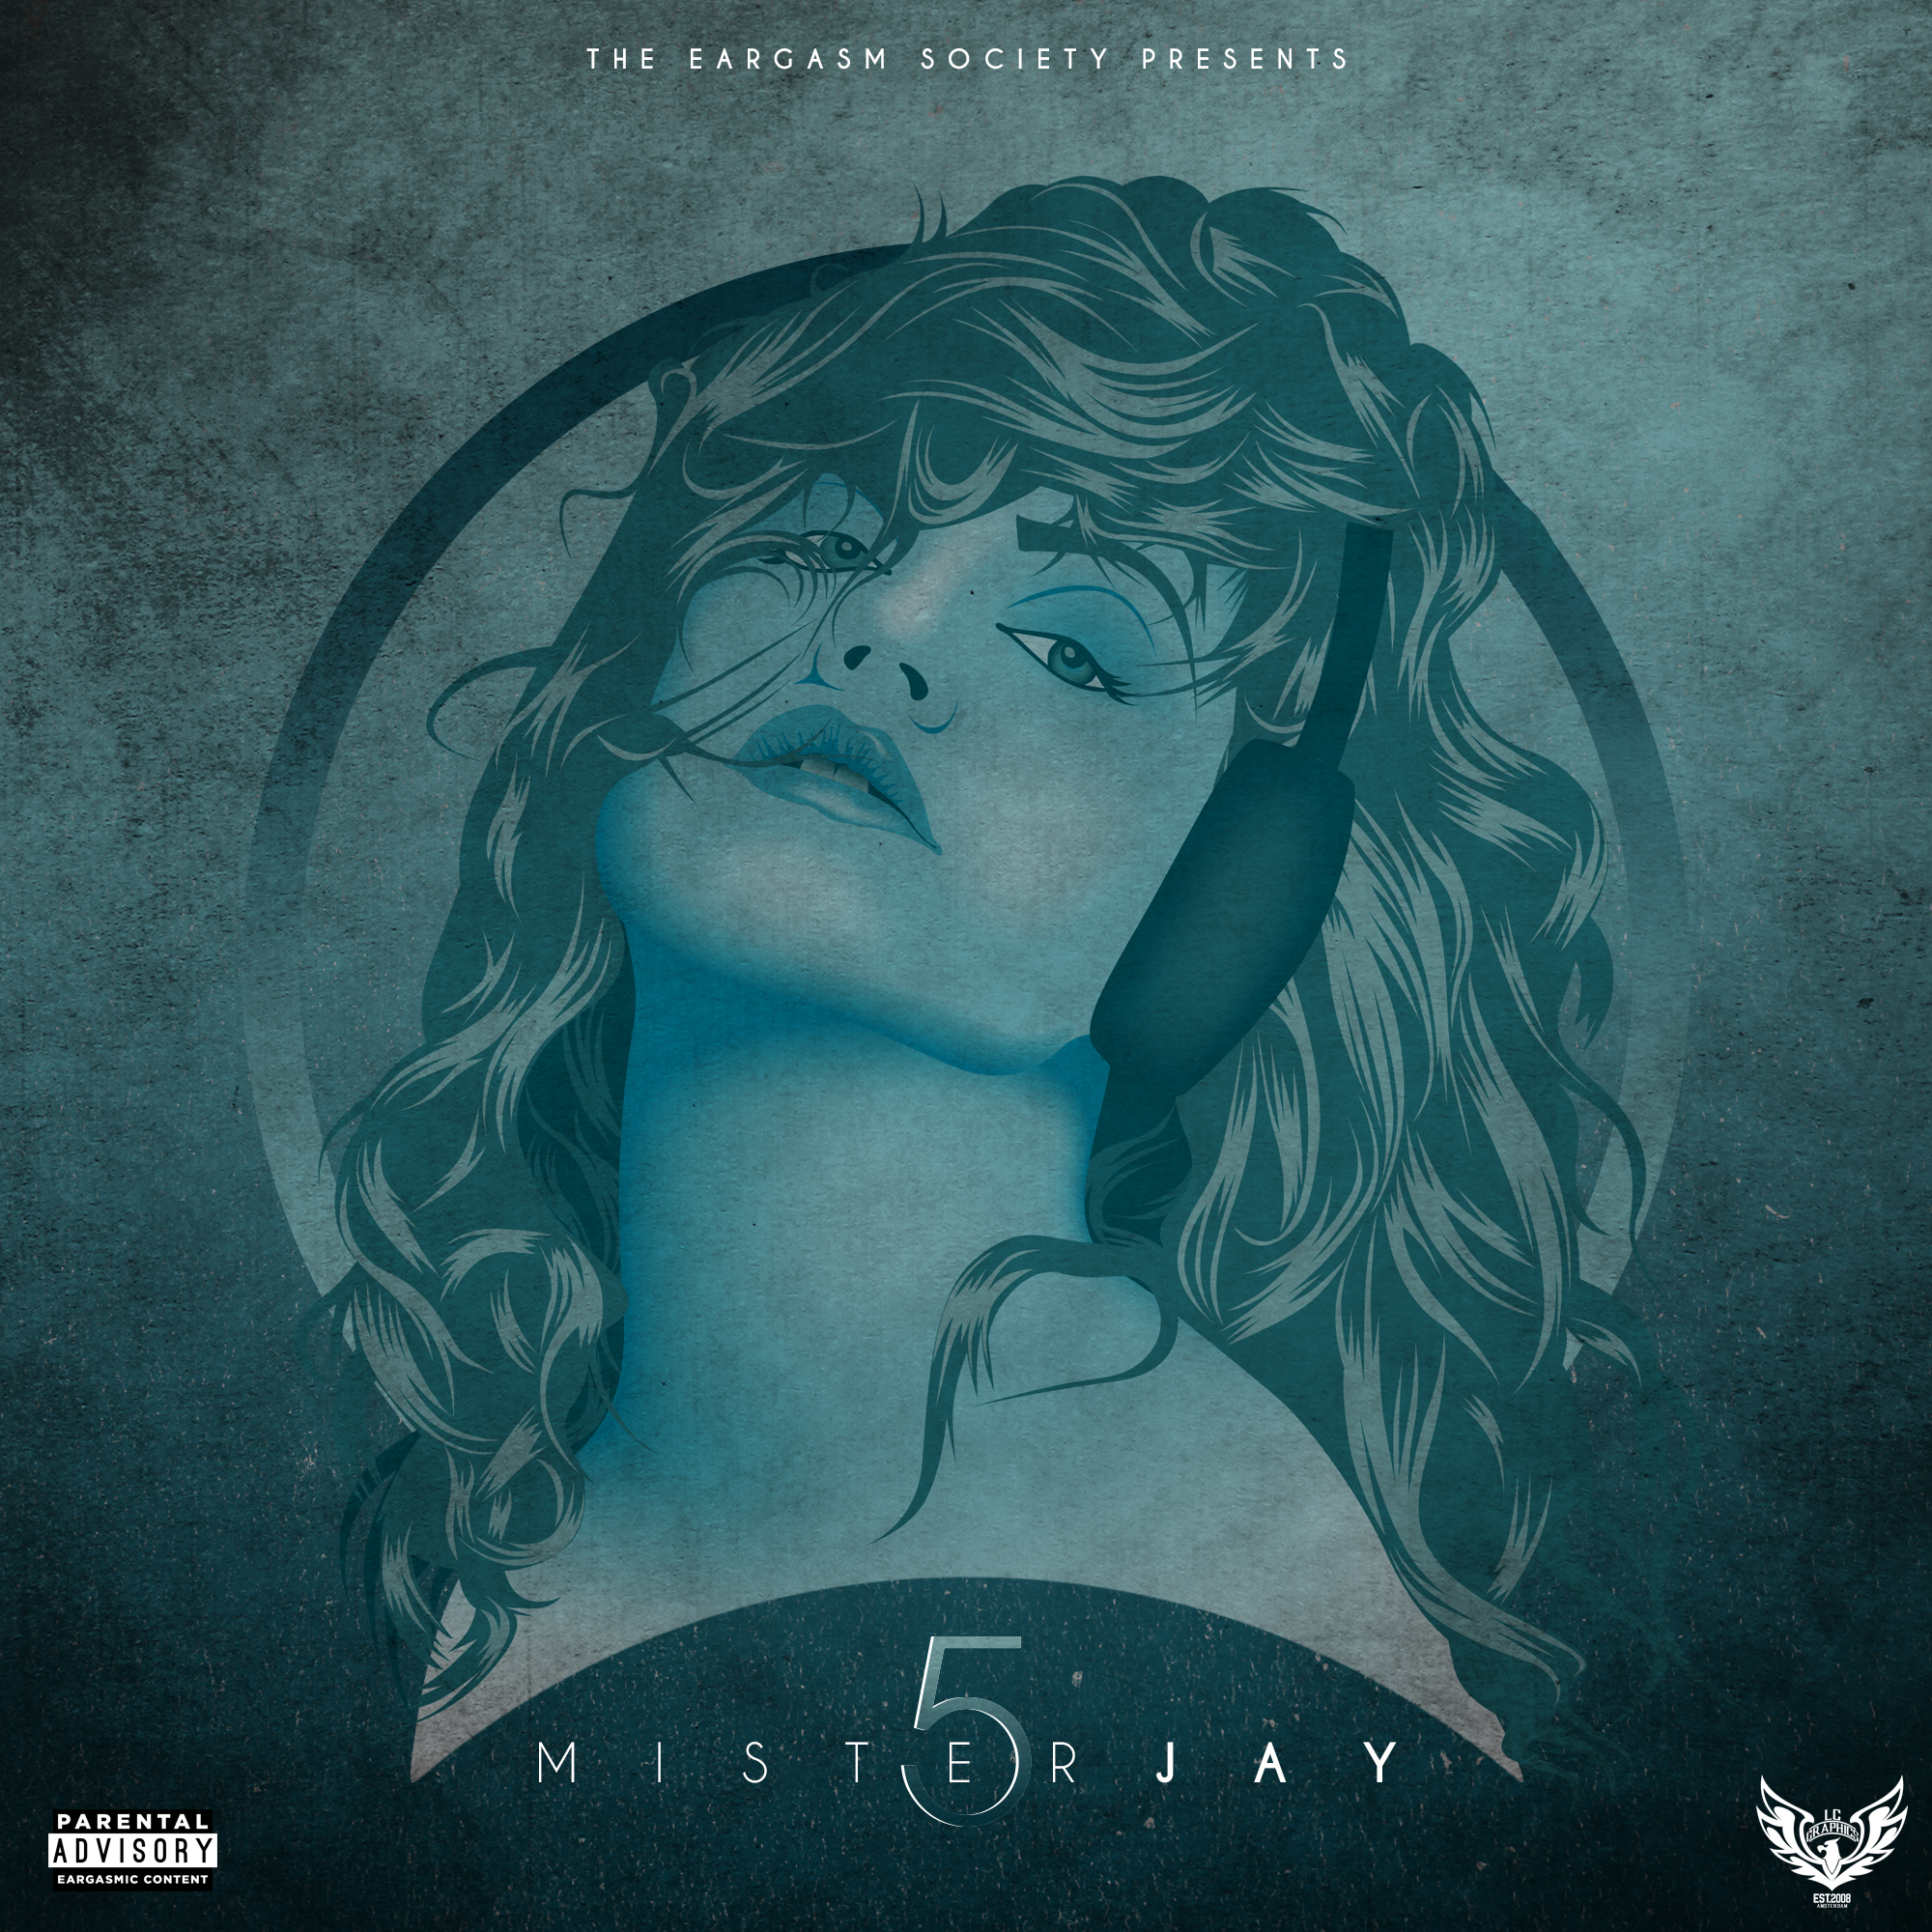 Mr. Jay - nmbr 5 cover art (byLCGraphics)